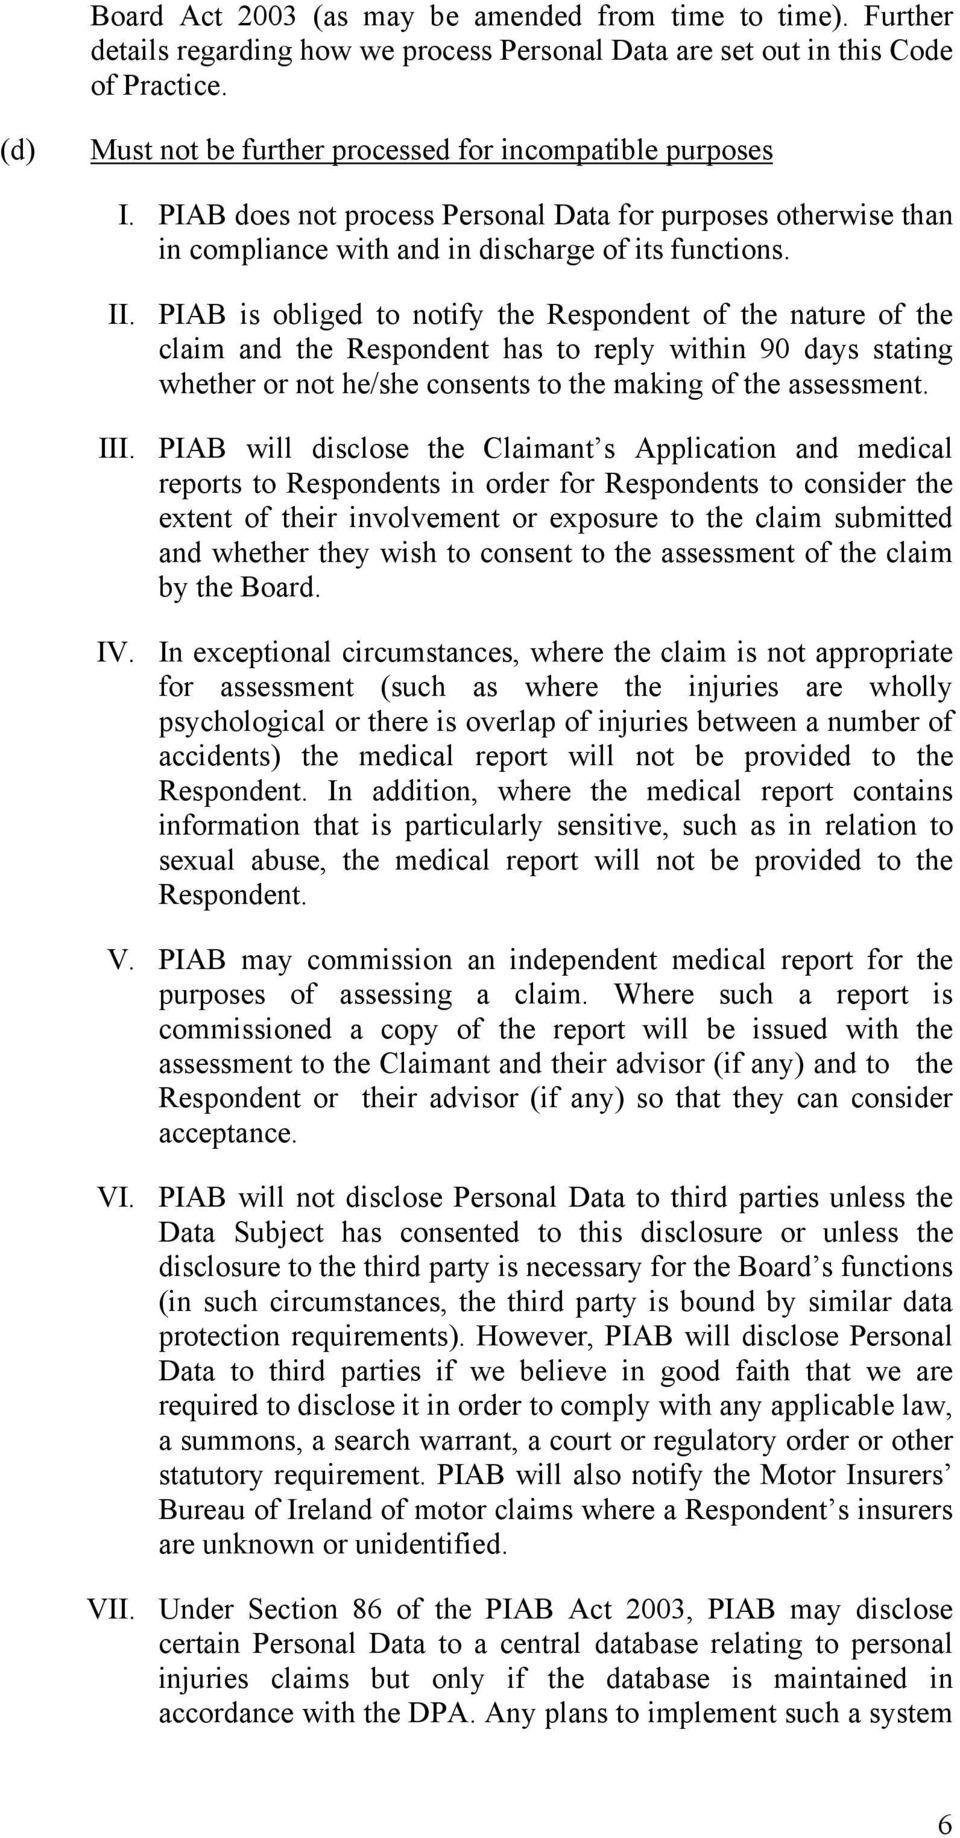 PIAB is obliged to notify the Respondent of the nature of the claim and the Respondent has to reply within 90 days stating whether or not he/she consents to the making of the assessment. III.